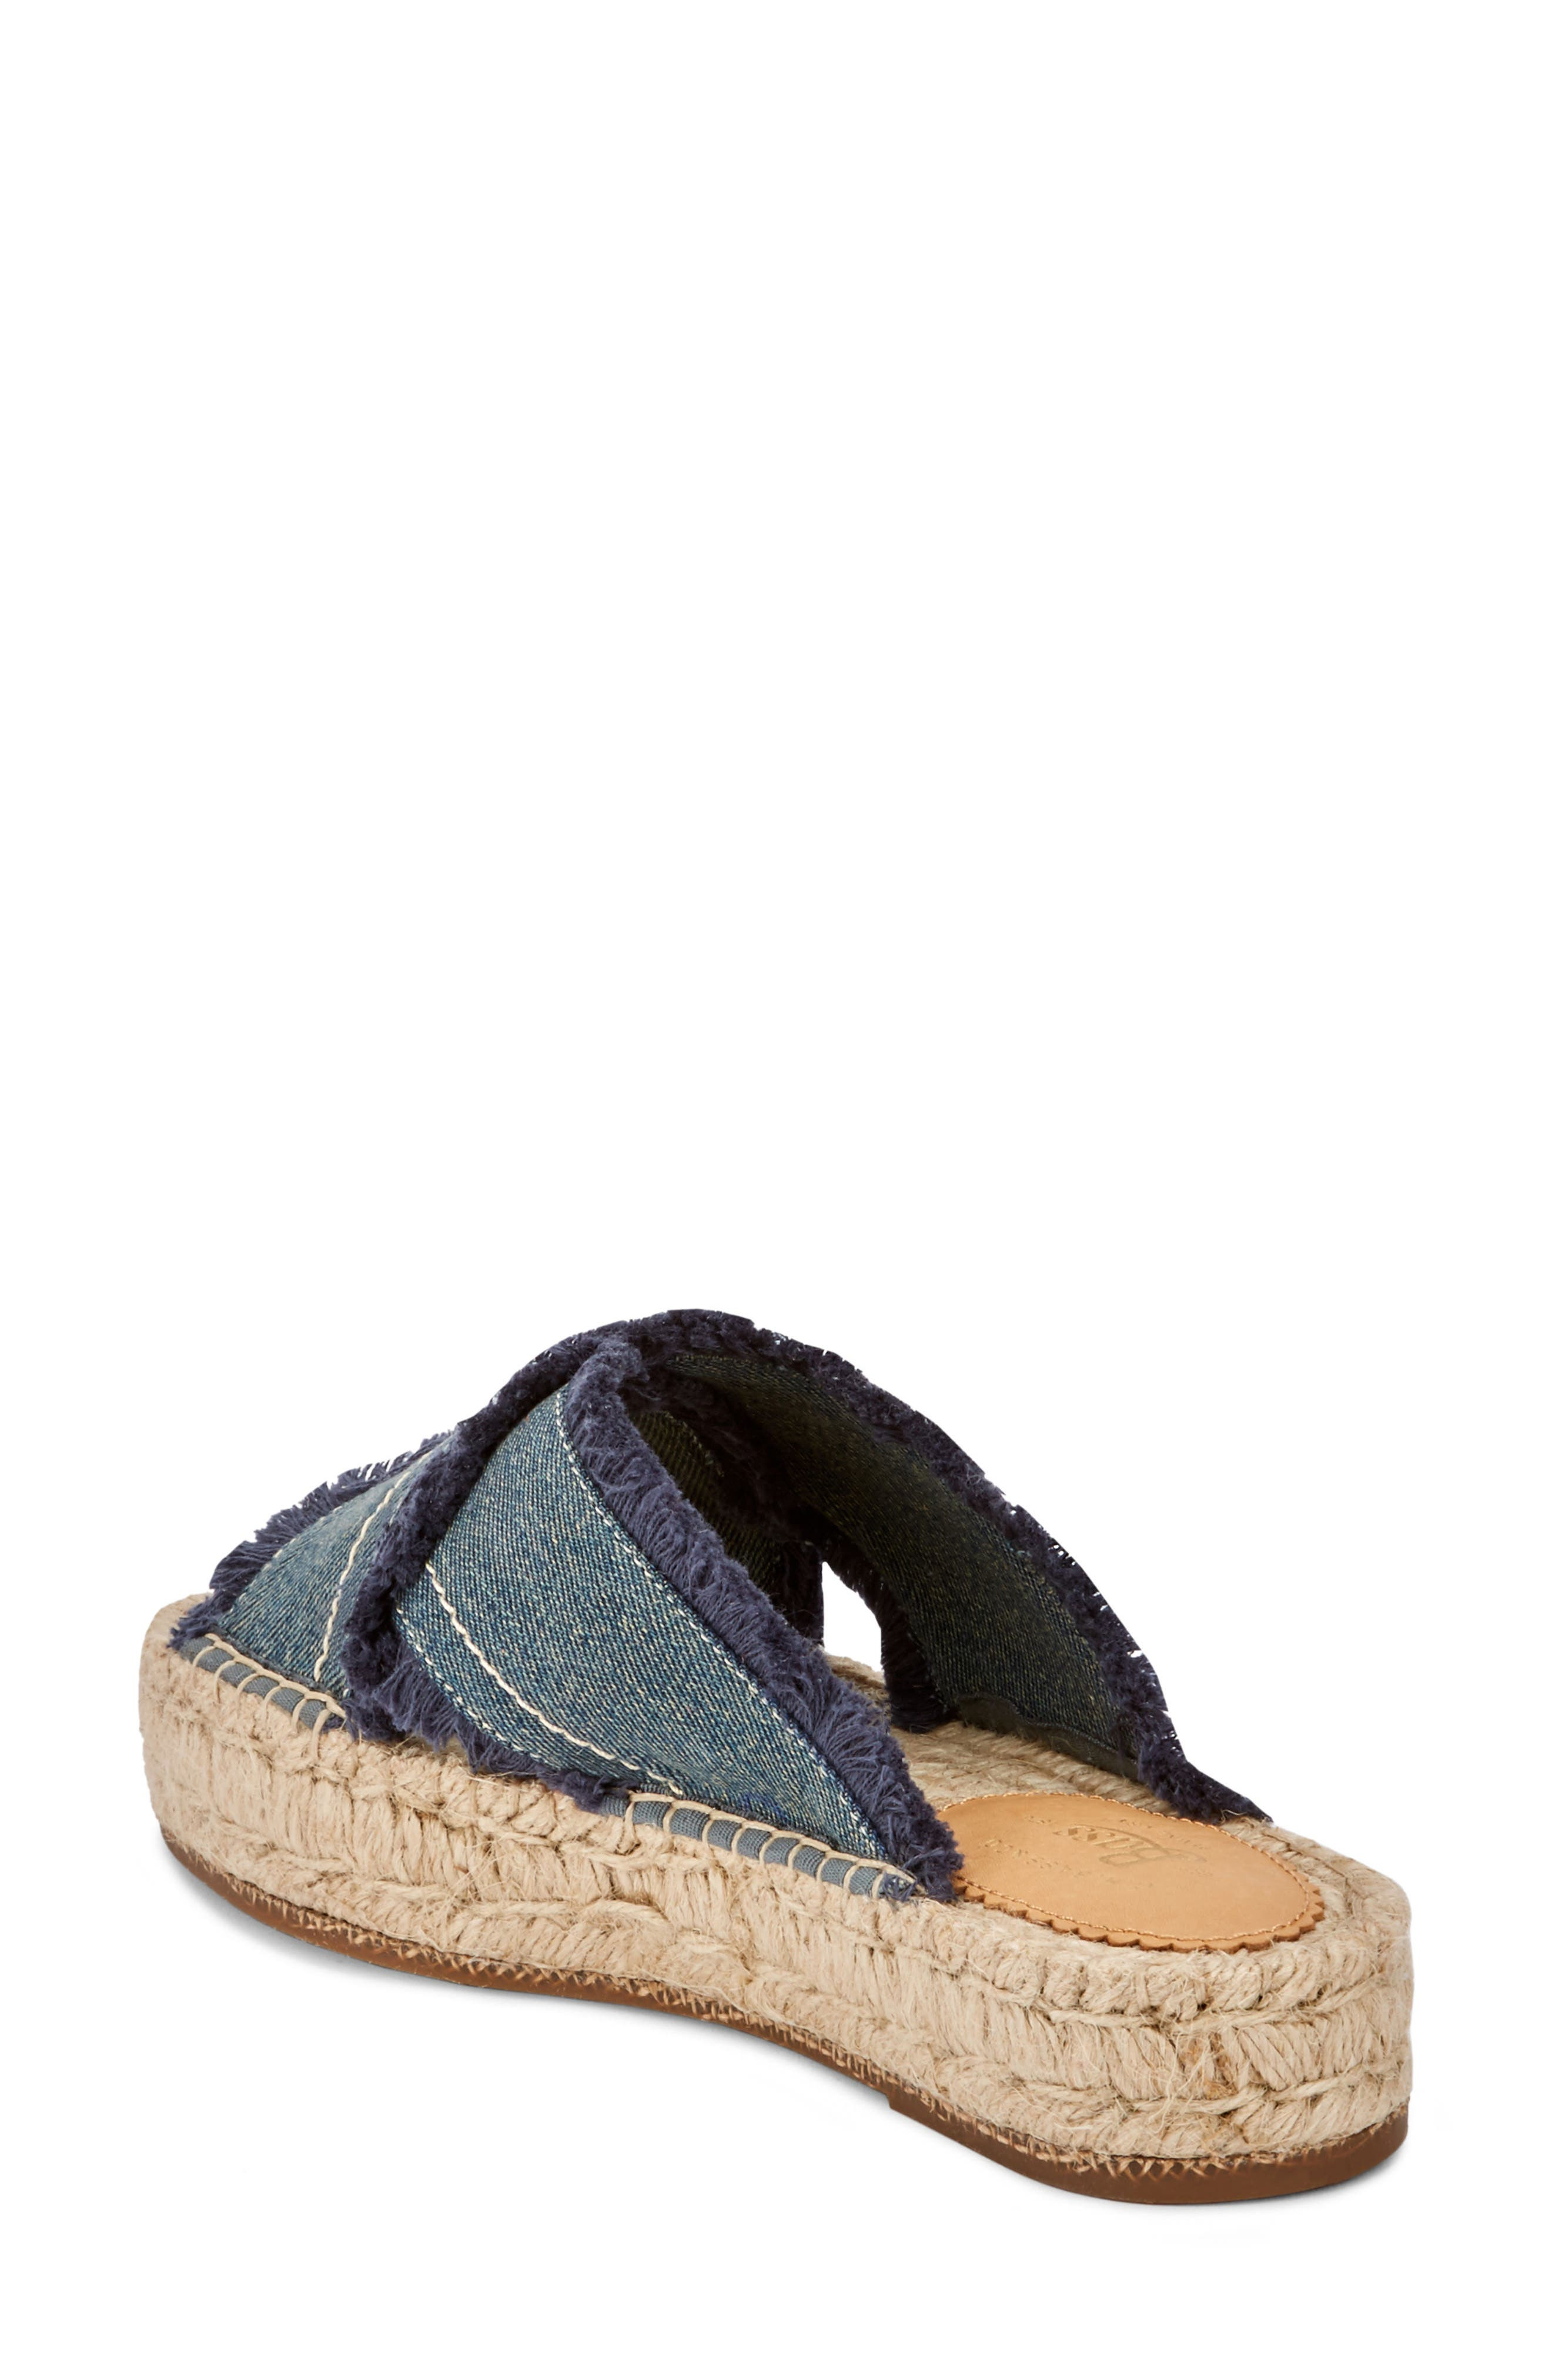 Anabelle Espadrille Sandal,                             Alternate thumbnail 2, color,                             DARK BLUE DENIM FABRIC